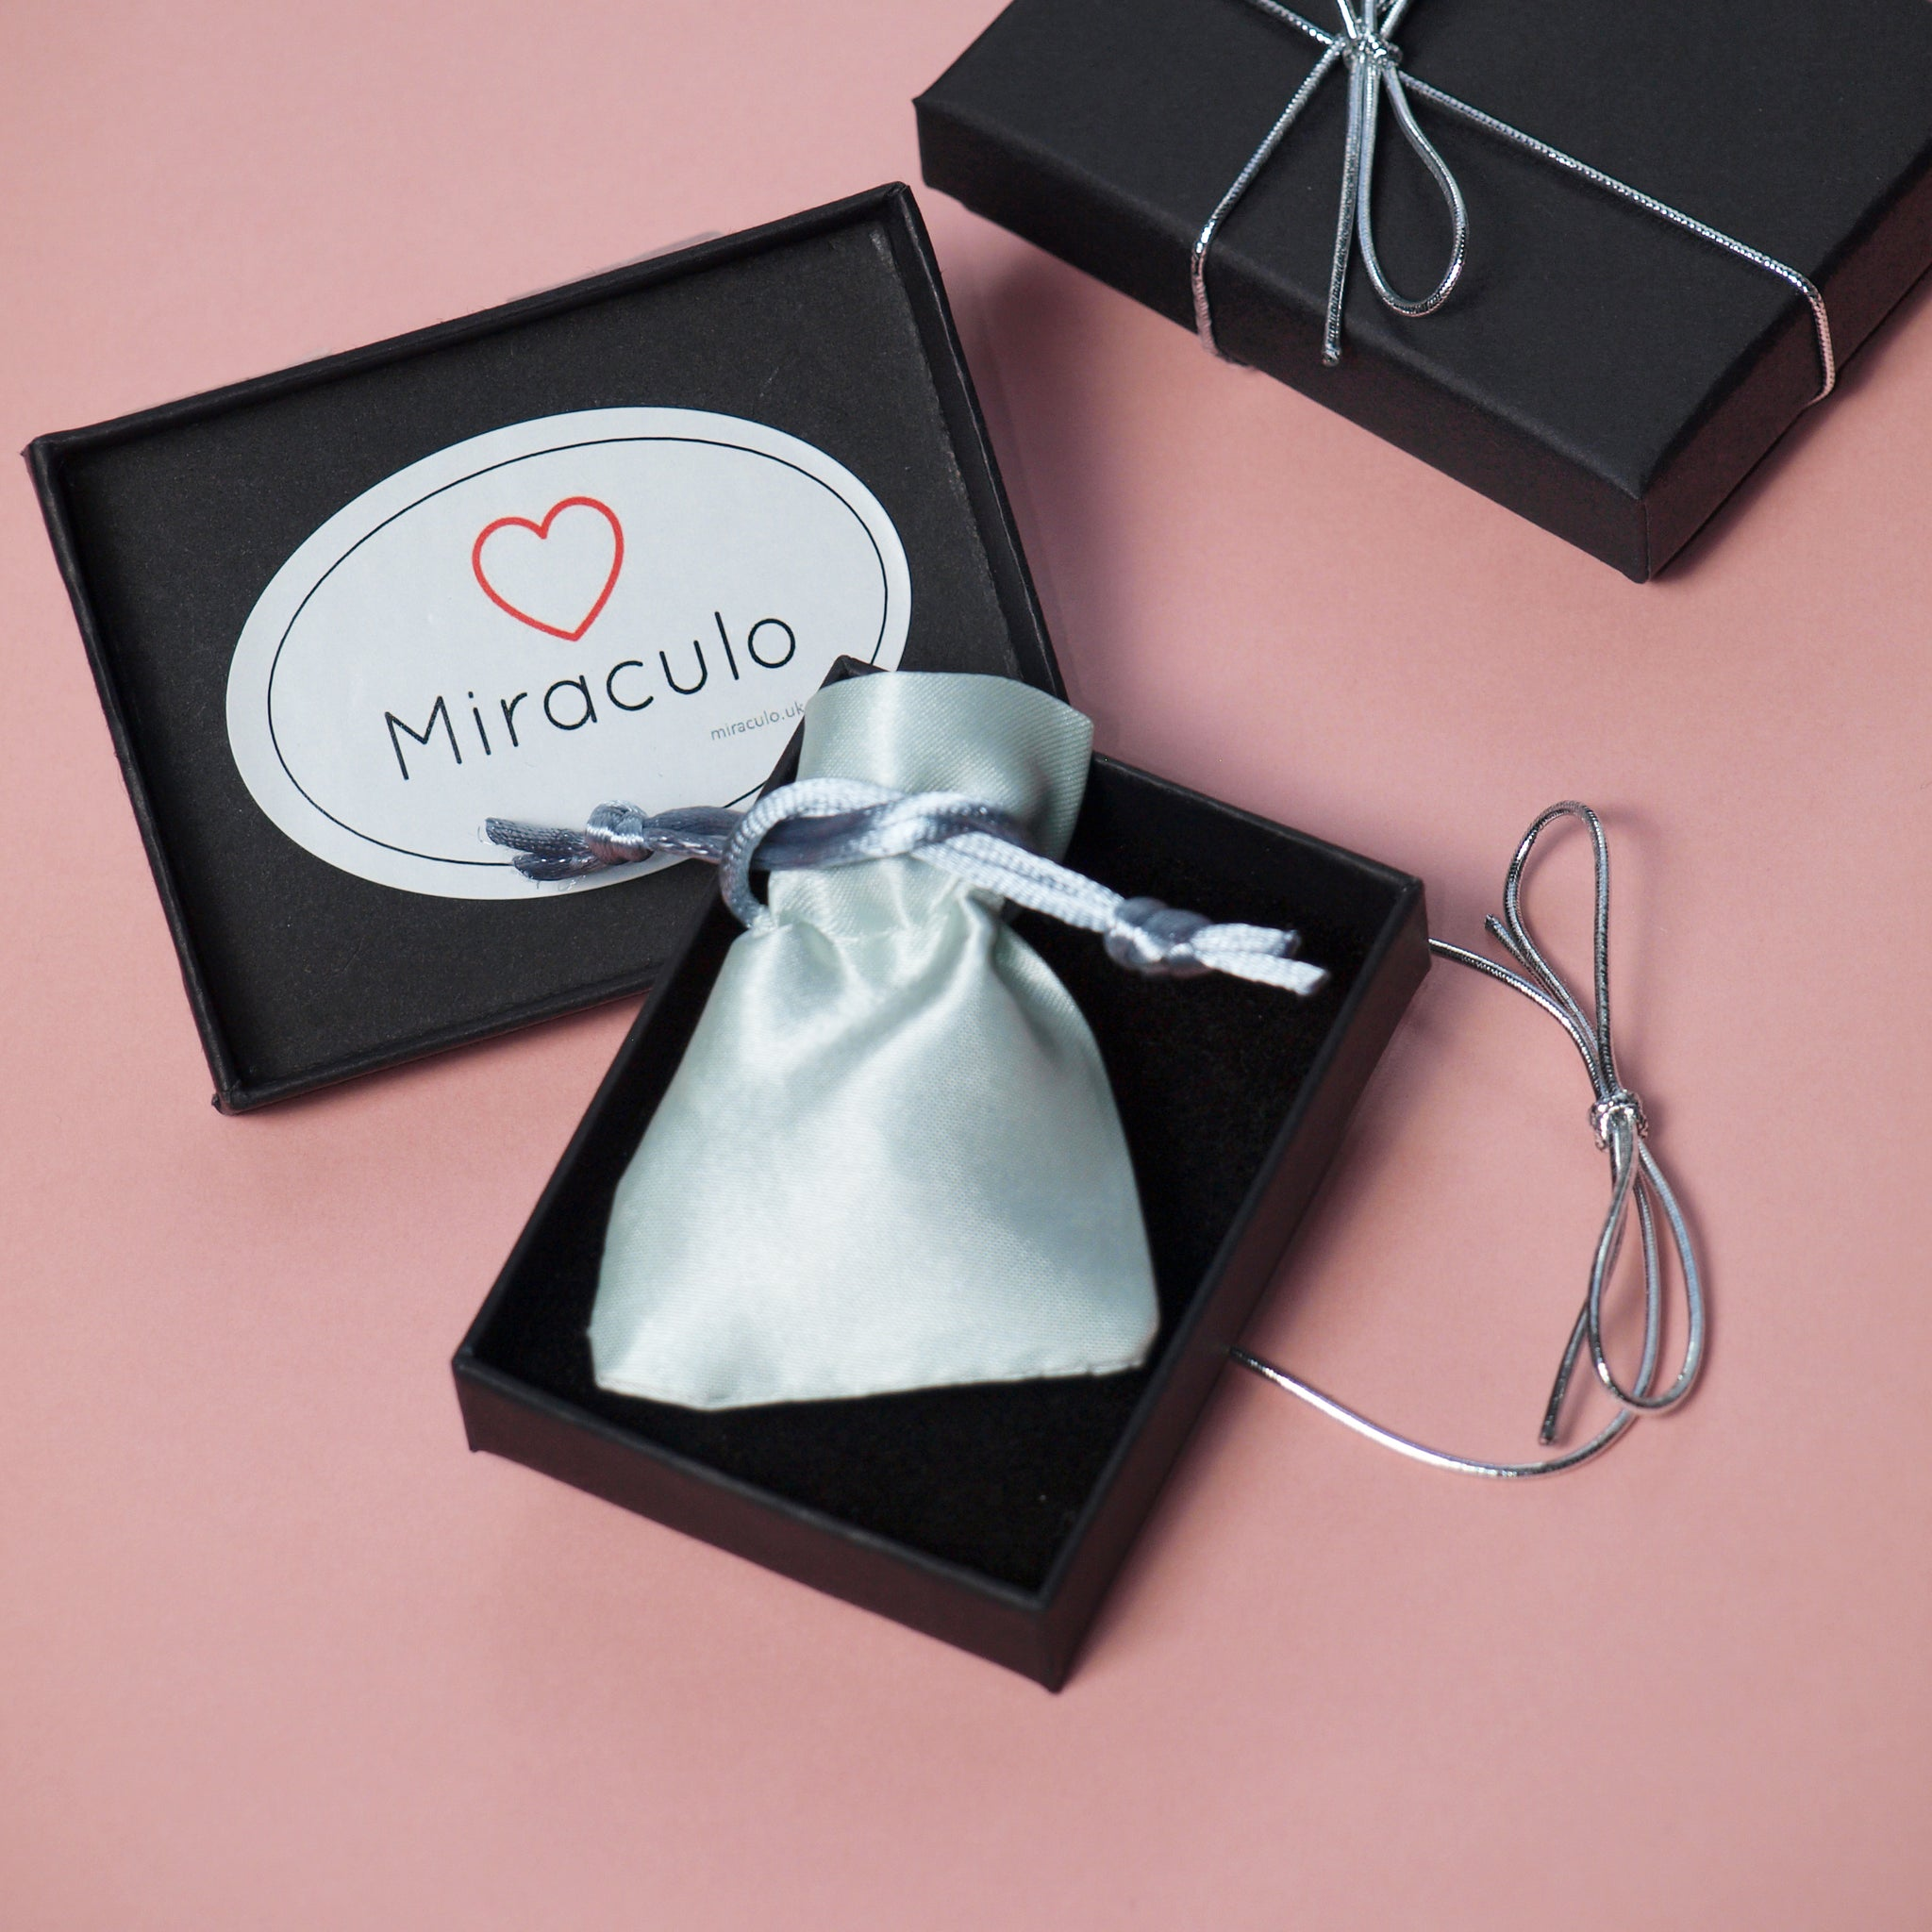 Interlinked Double Heart Pendant with Necklace in Silver – Miraculo